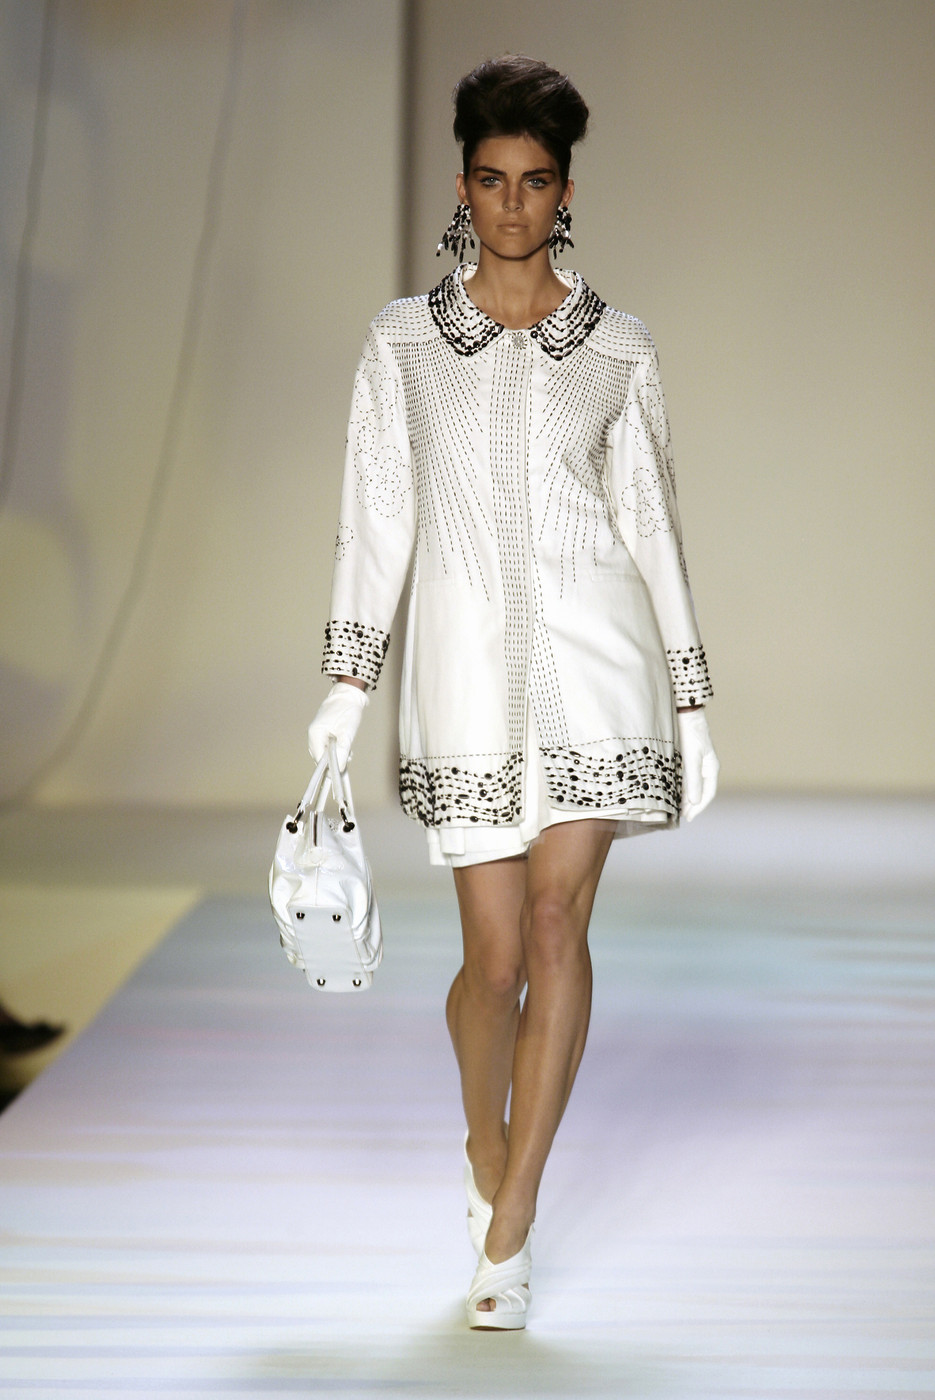 Moschino at Milan Fashion Week Spring 2007